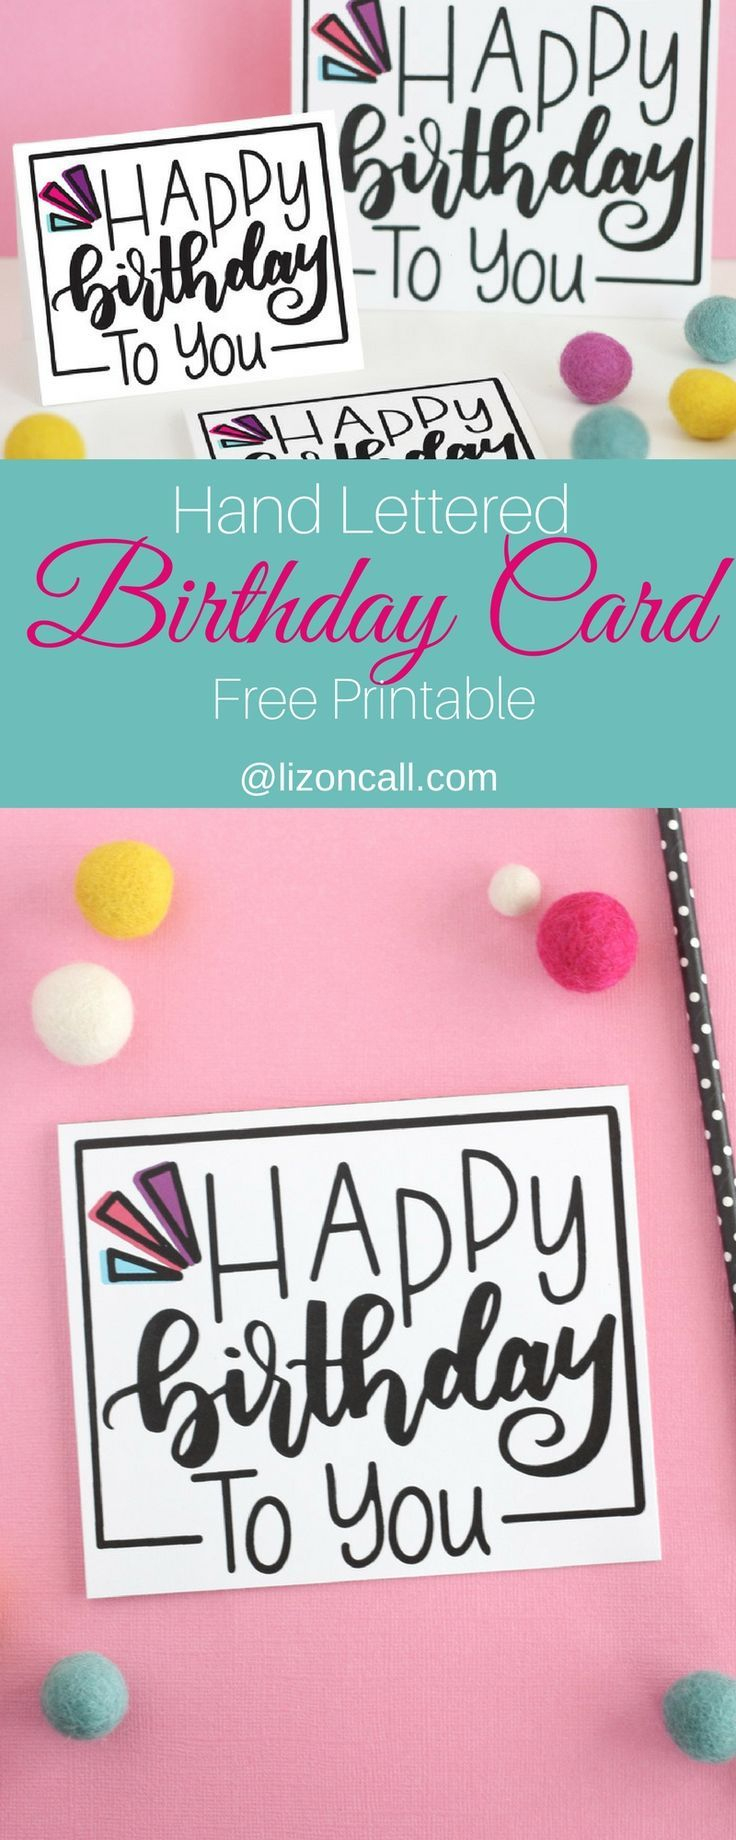 Hand Lettered Free Printable Birthday Card | Celebrating Birthdays - Free Printable Birthday Cards For Your Best Friend